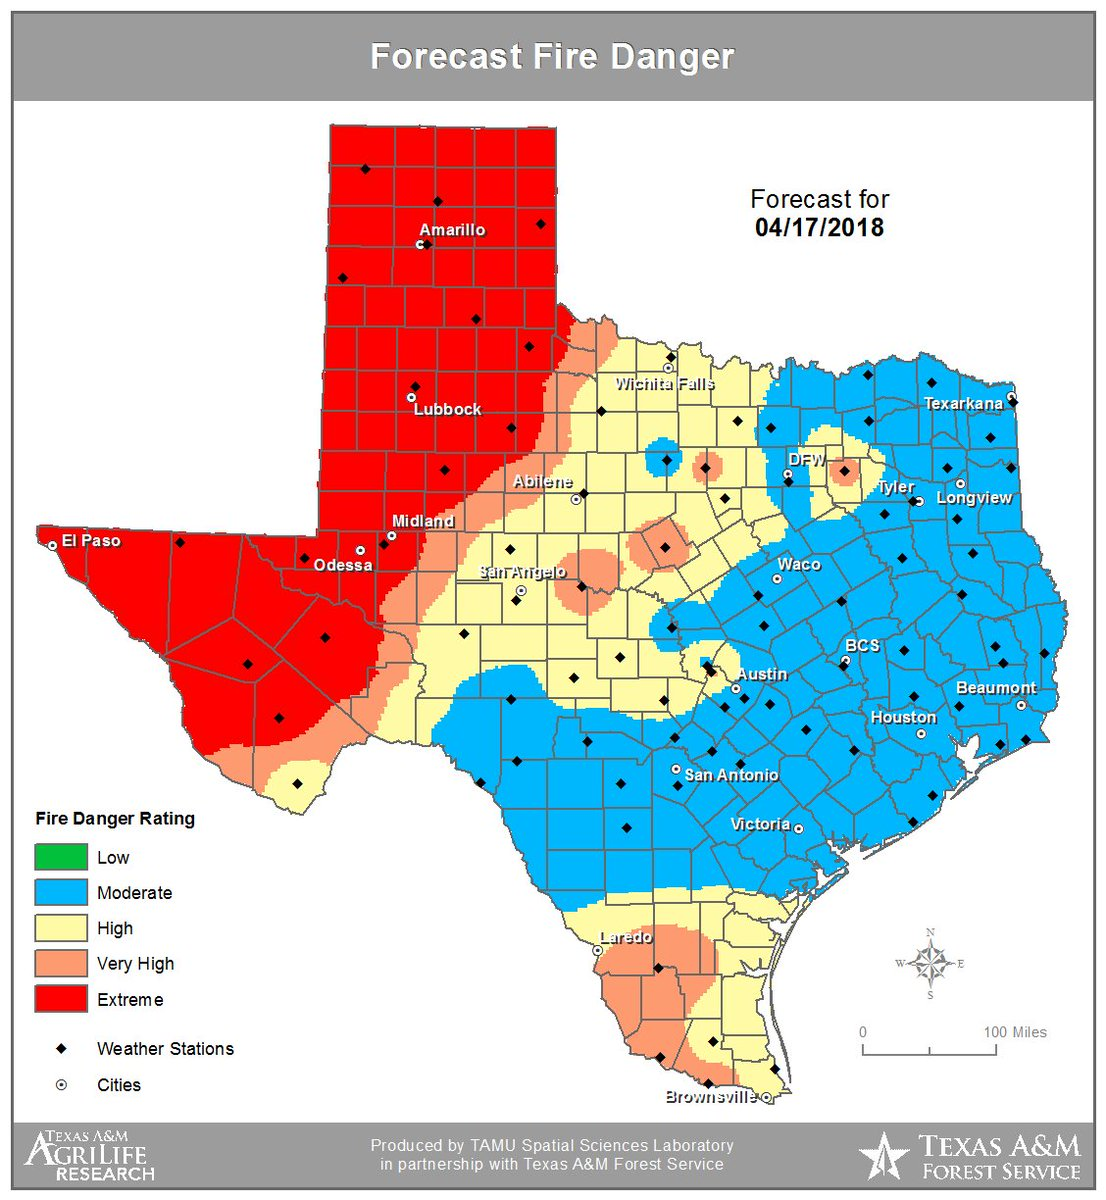 Map Of Texas Please.Texas Storm Chasers On Twitter Folks Tomorrow Could Easily End Up